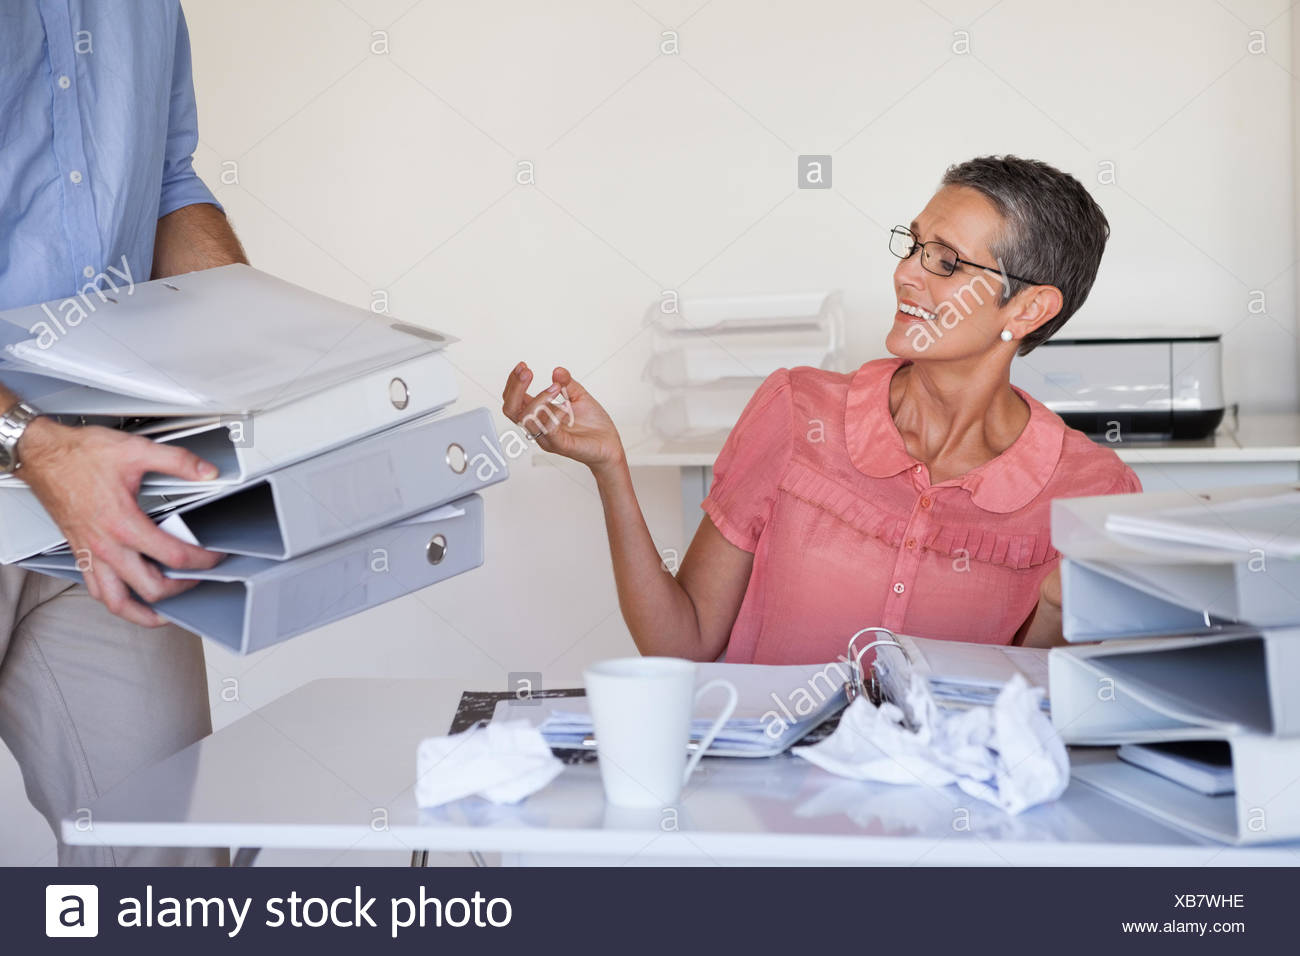 Casual businesswomans workload getting bigger and bigger - Stock Image